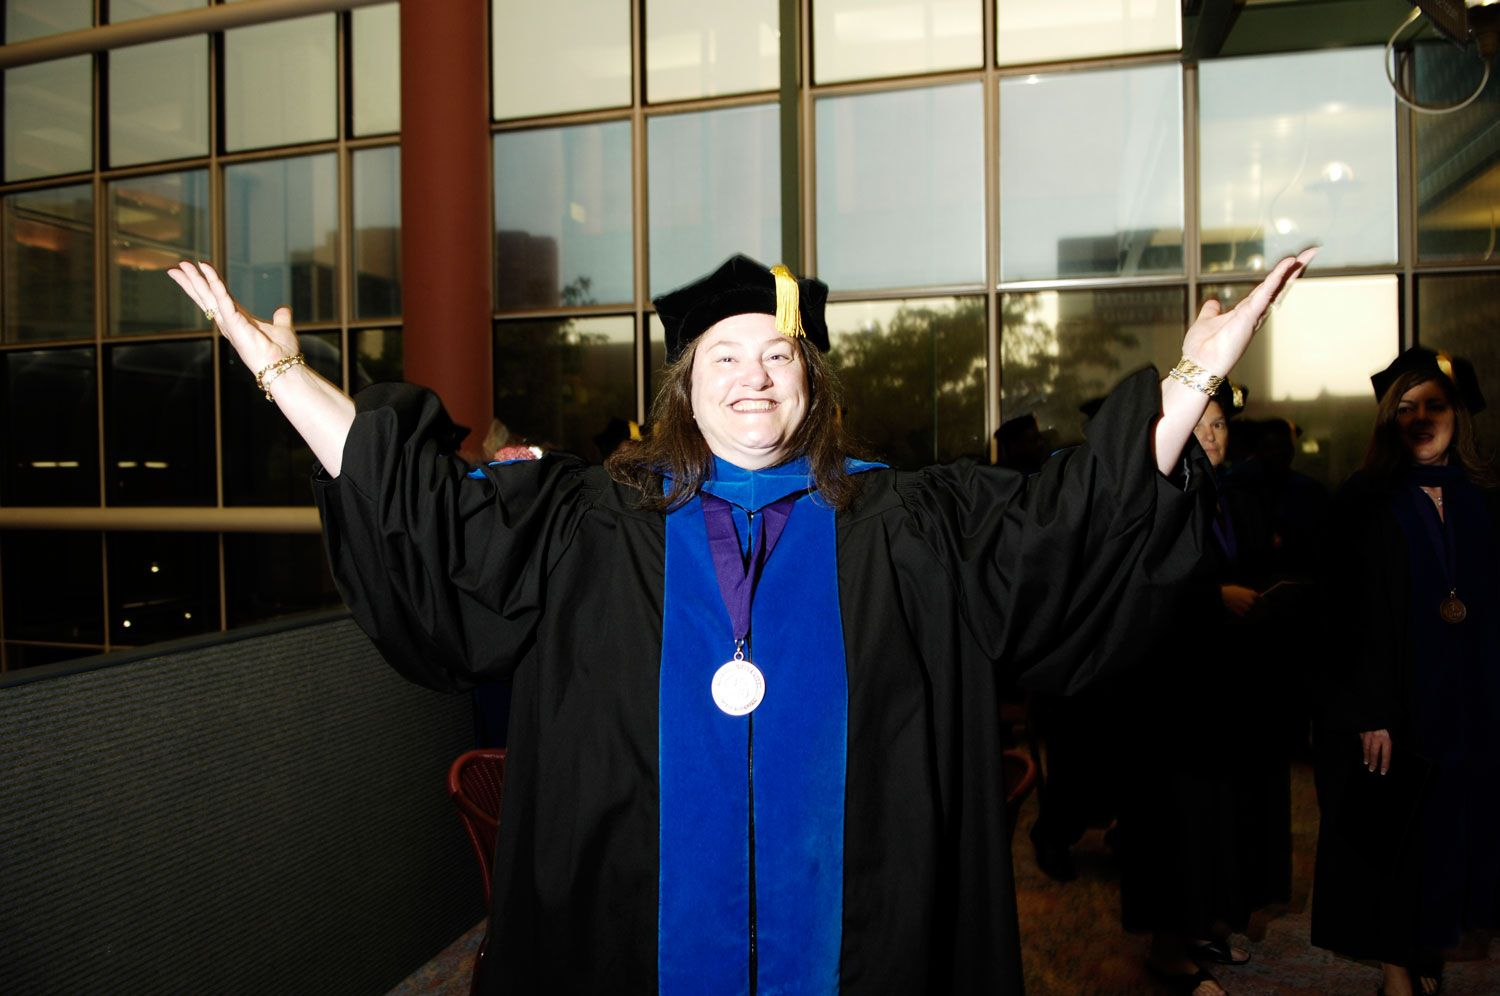 Now this is one happy Capella University graduate! #college #graduation